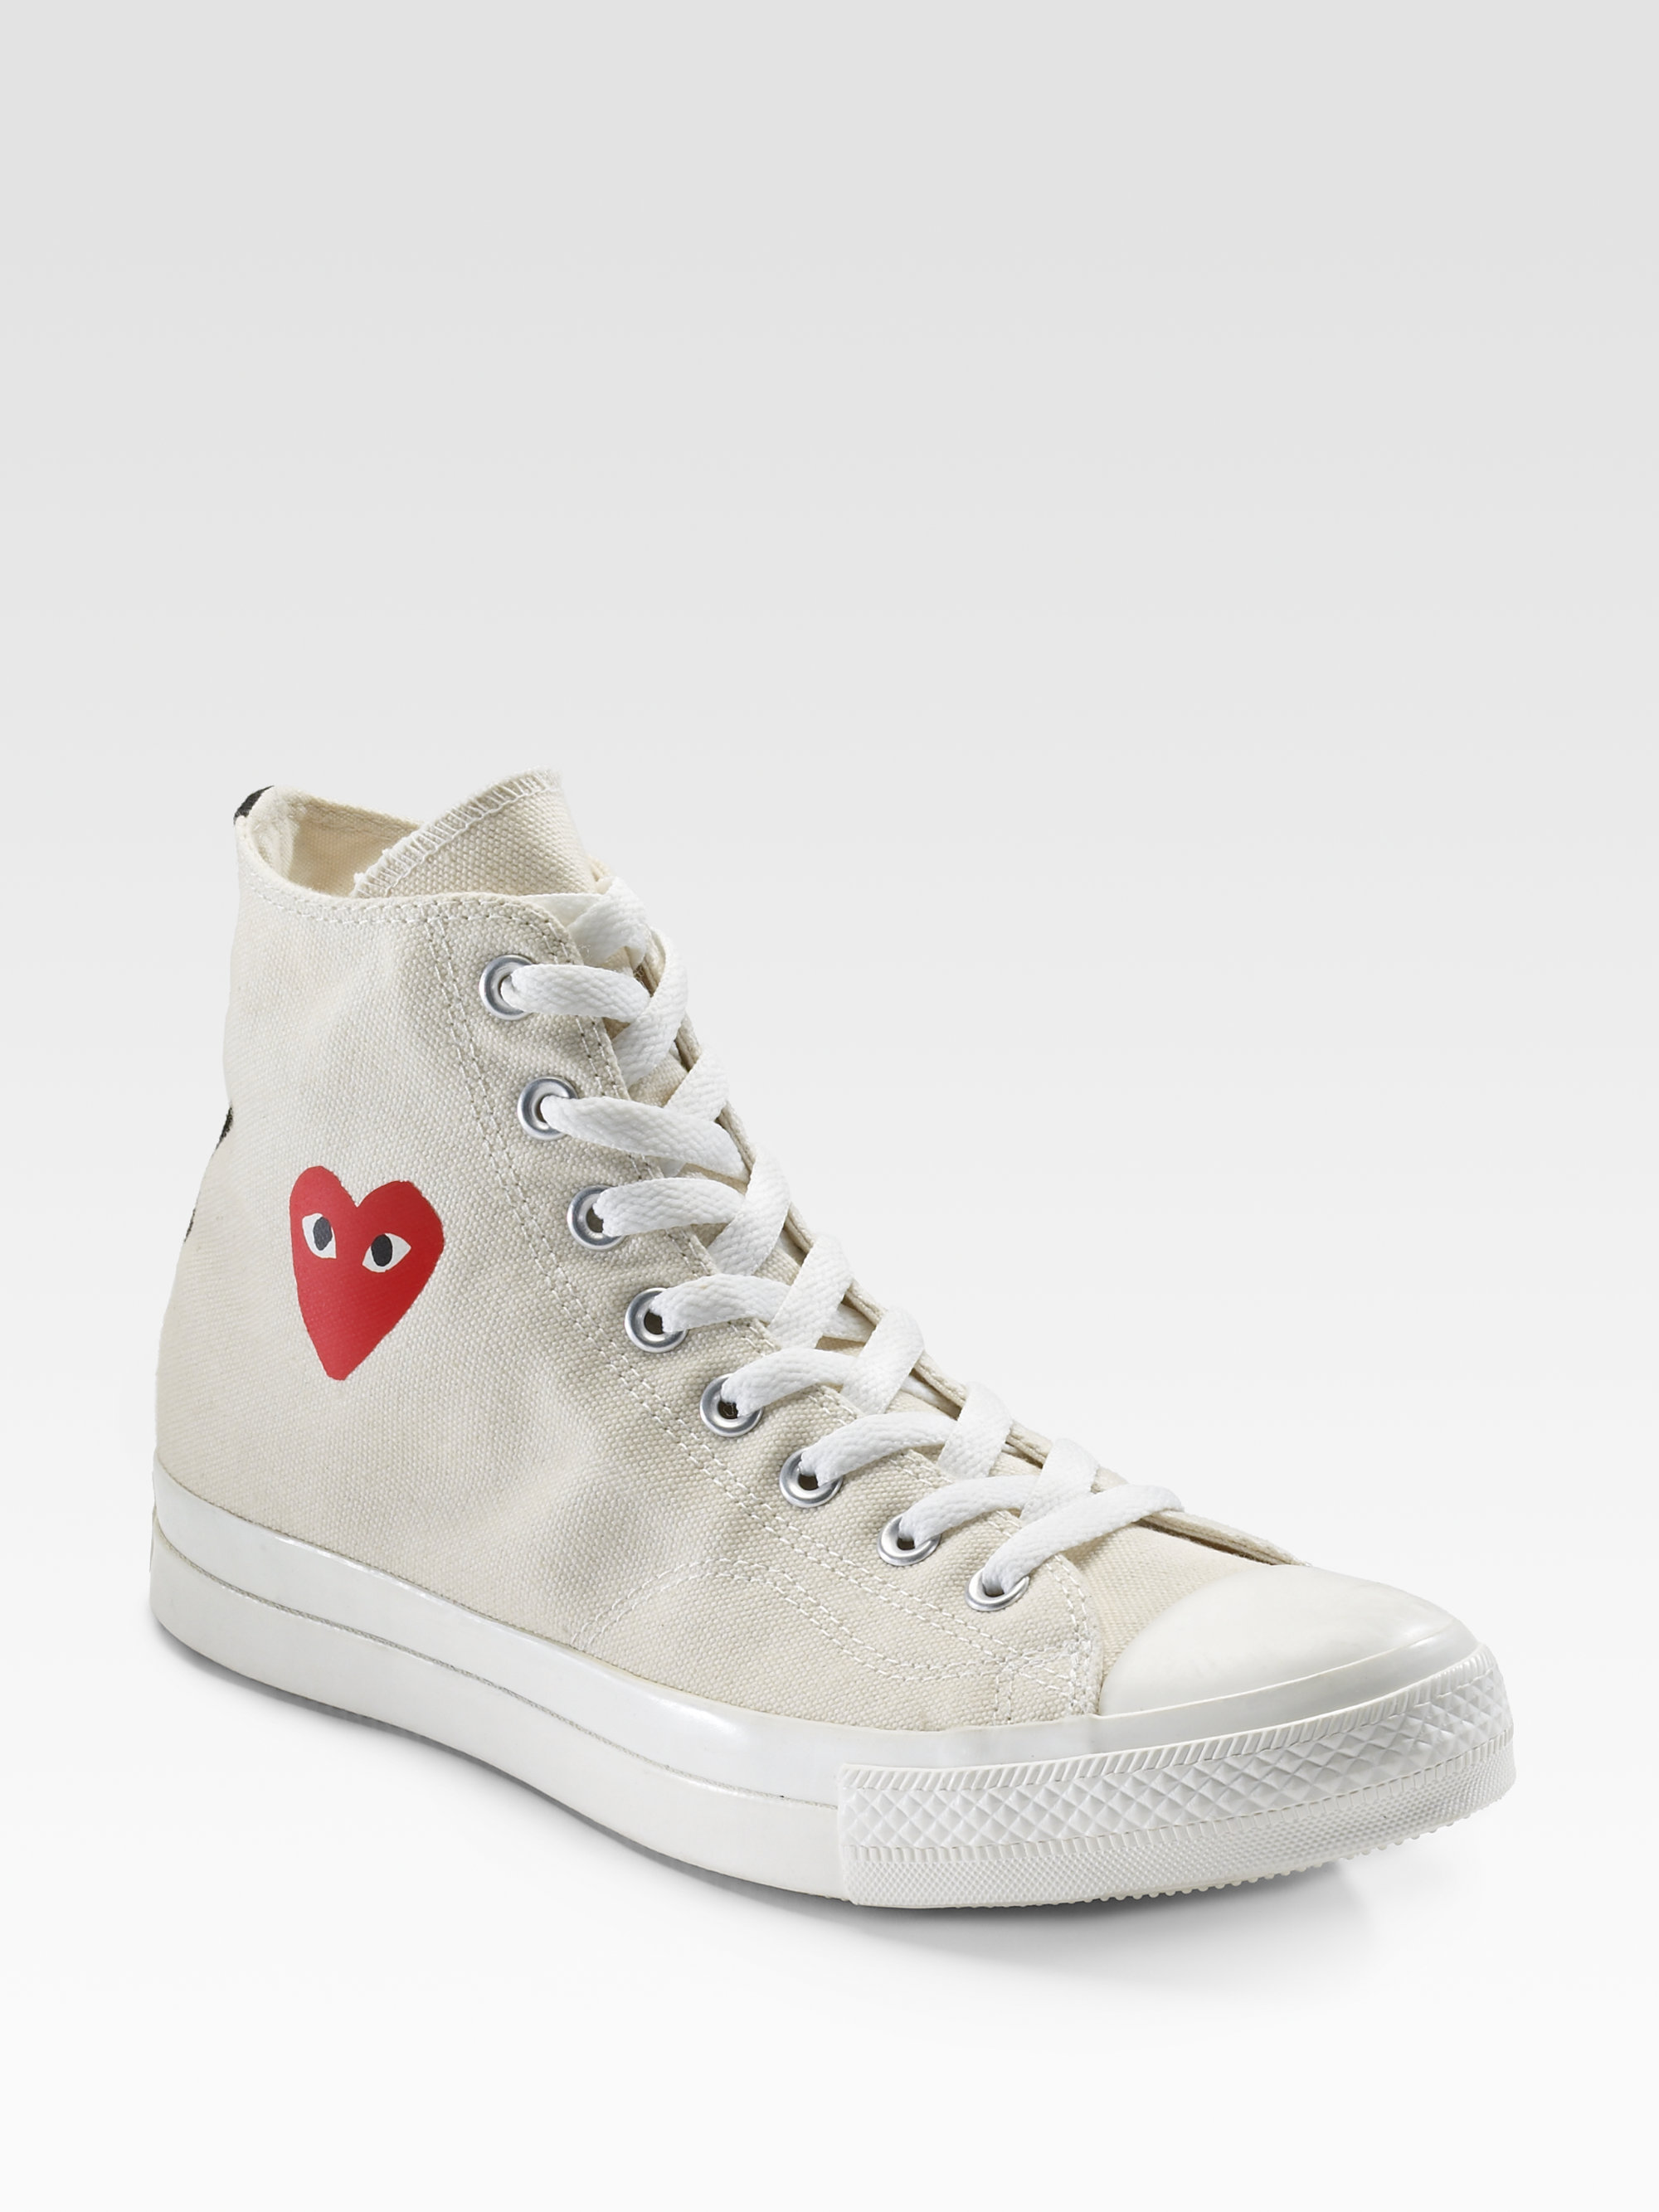 c8e61dfe498d Lyst - Play Comme des Garçons High-top Canvas Sneakers in White